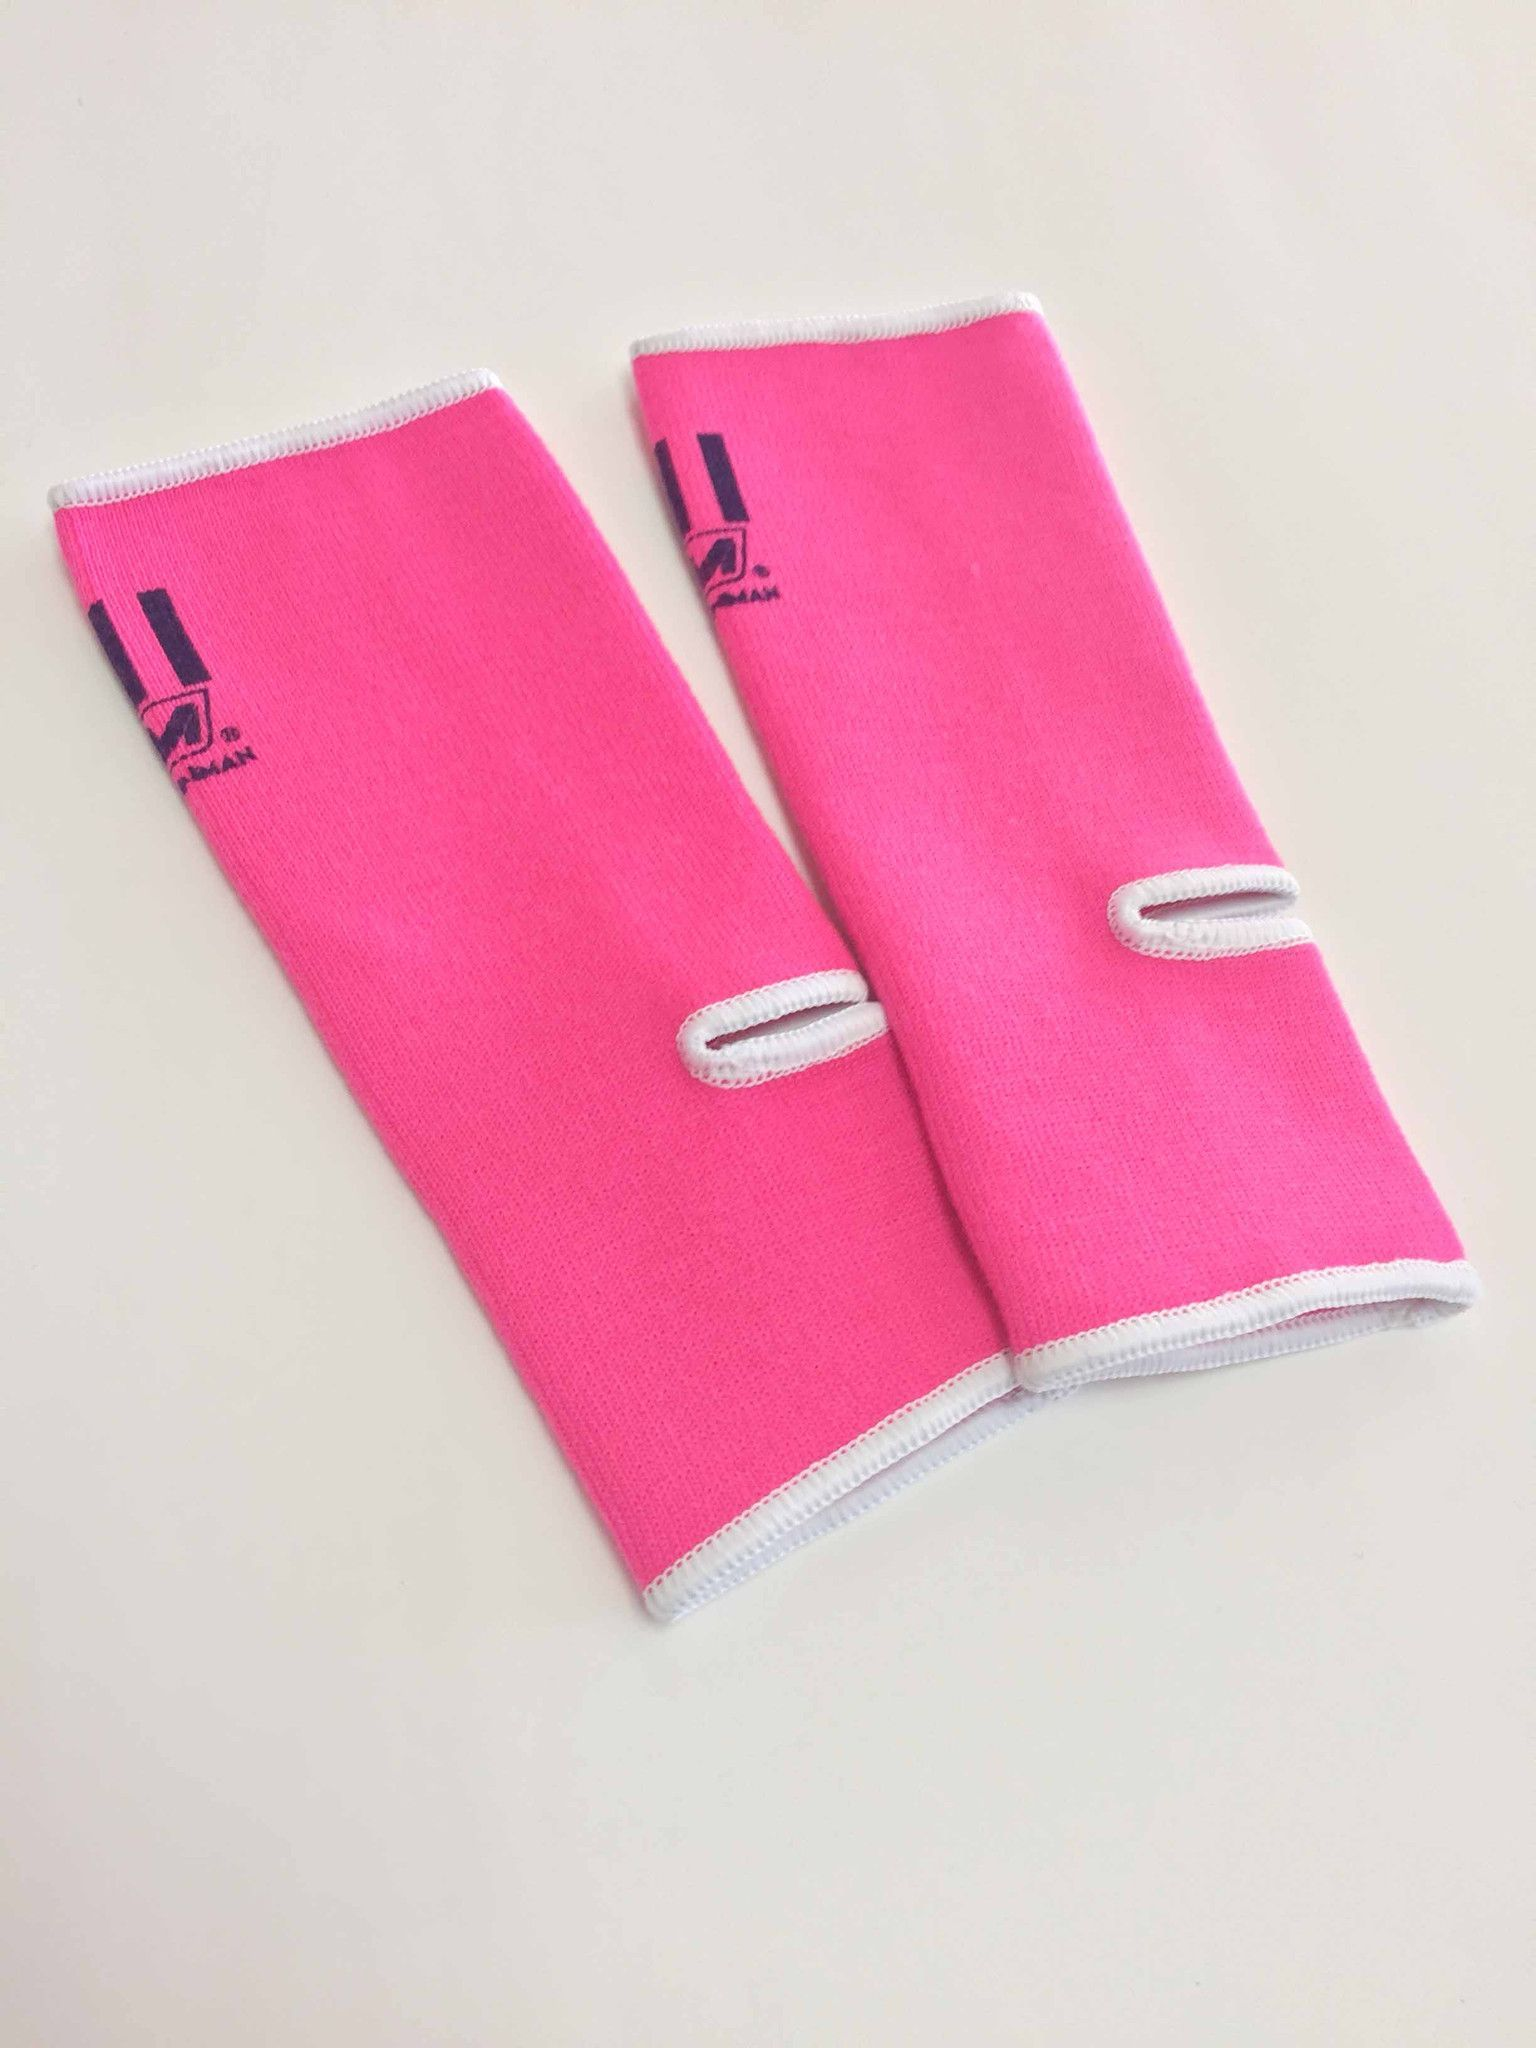 NATIONMAN Pink Ankle Guard